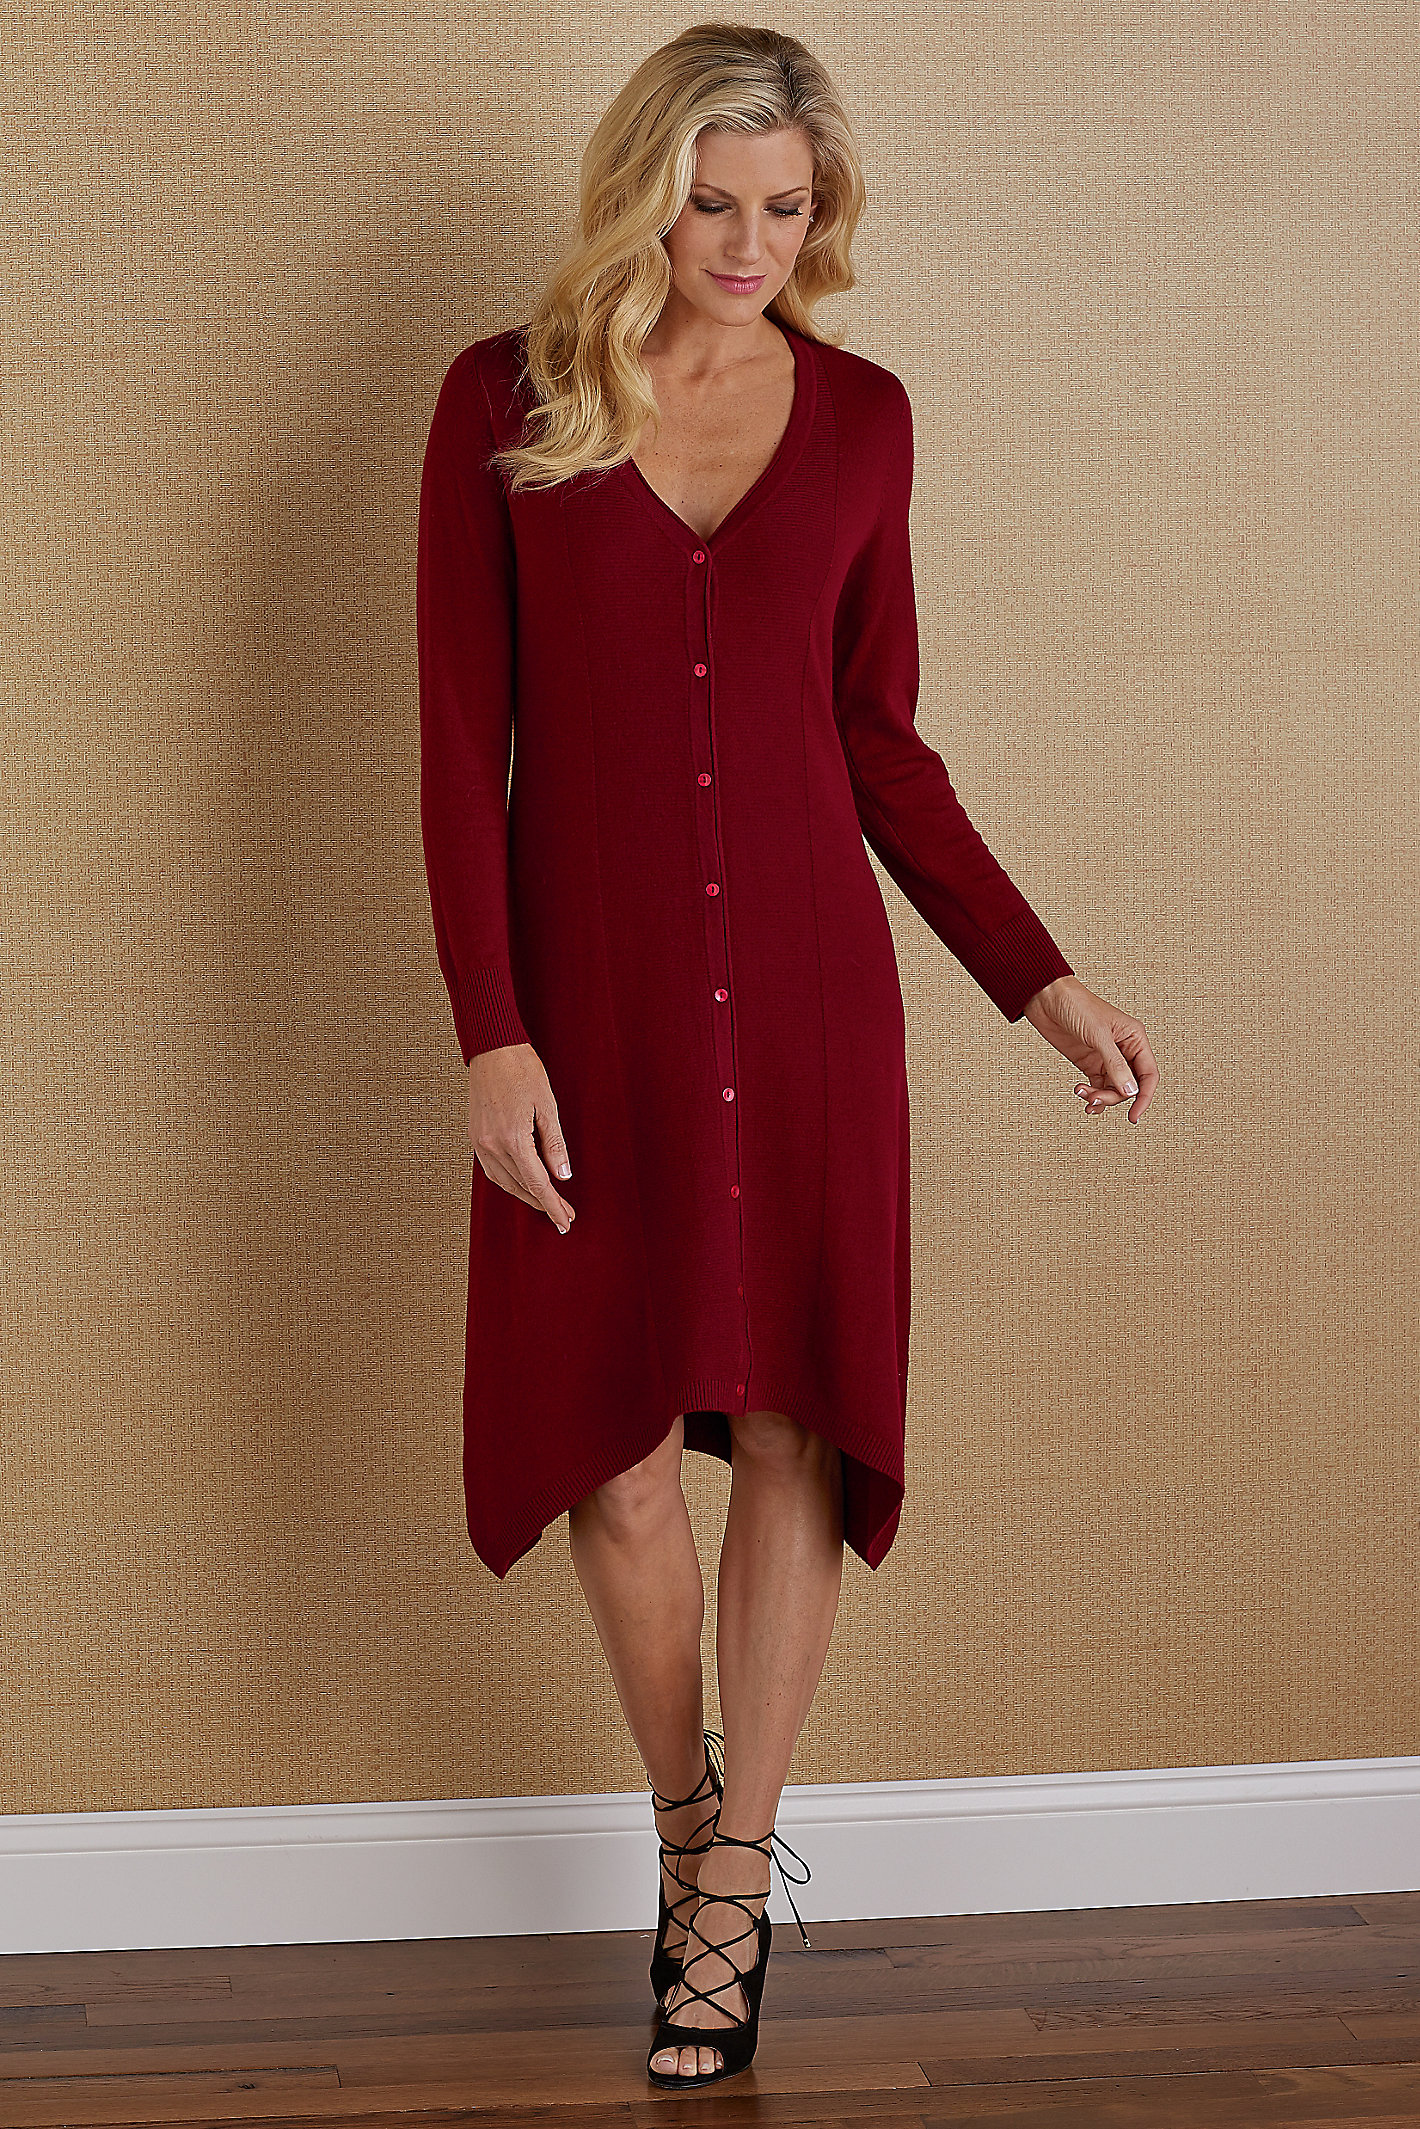 SAVANNAH SWEATER DRESS